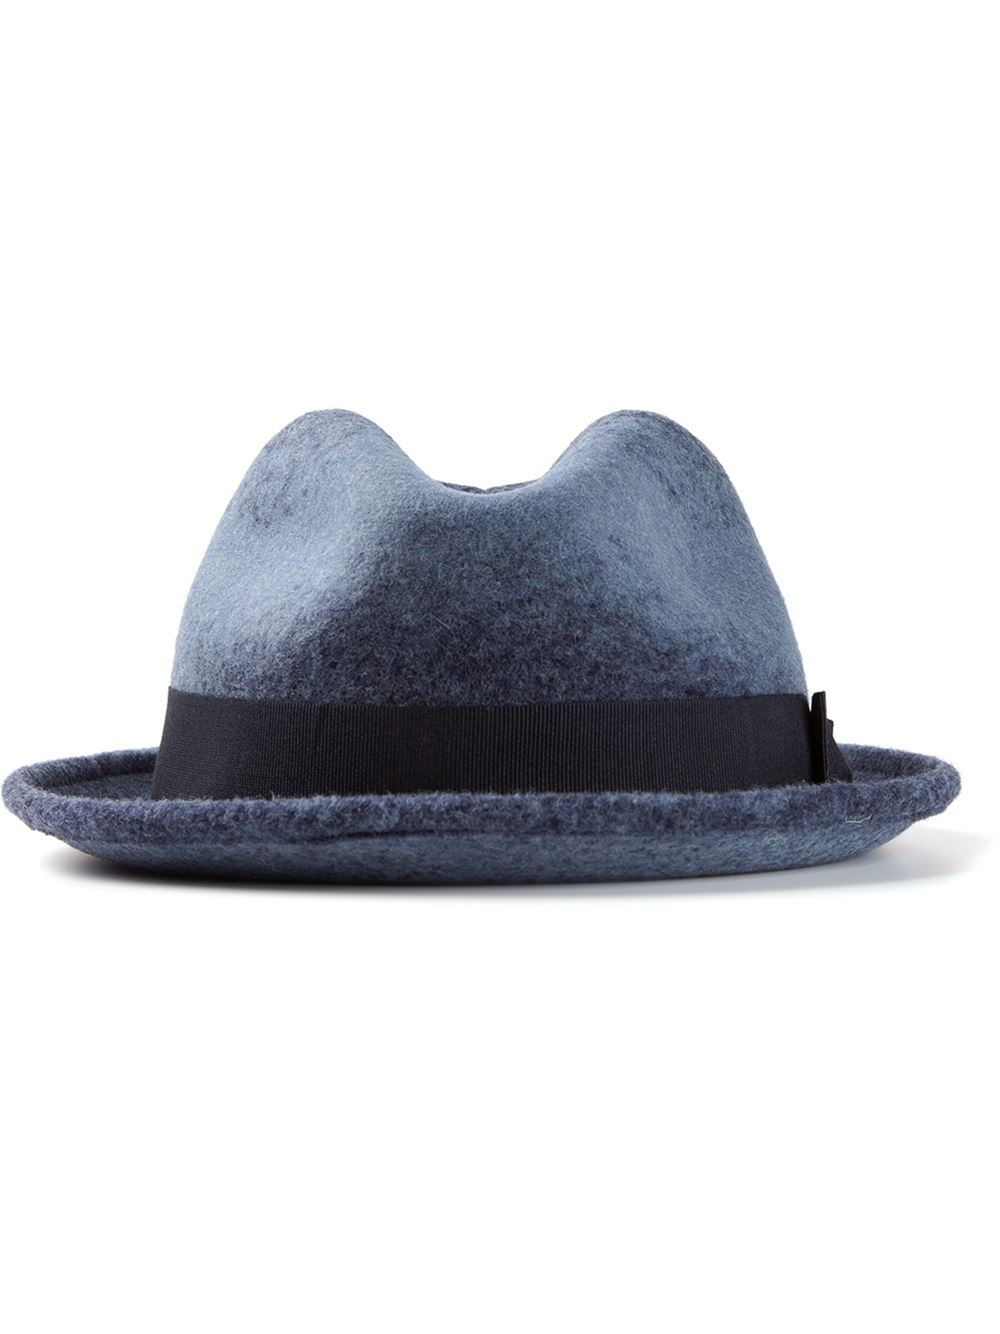 a16b81ff Paul Smith Trilby Hat in Blue for Men - Lyst